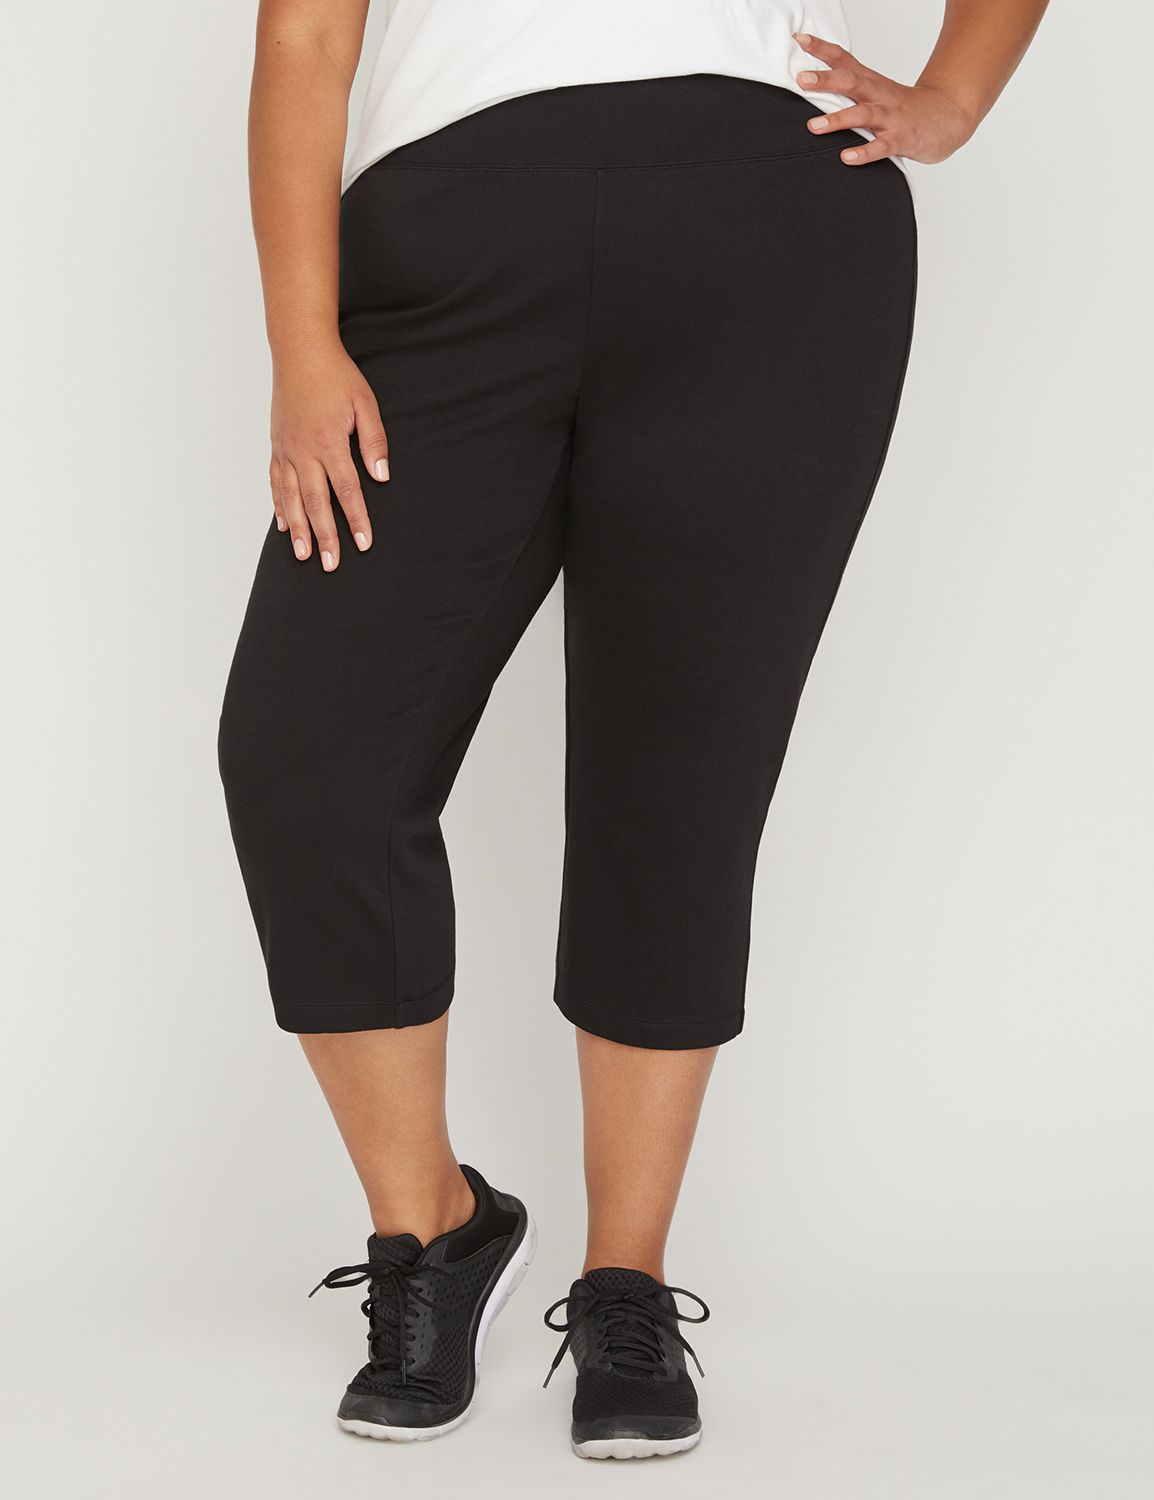 Yoga Capri Yoga Capri MP-300054223